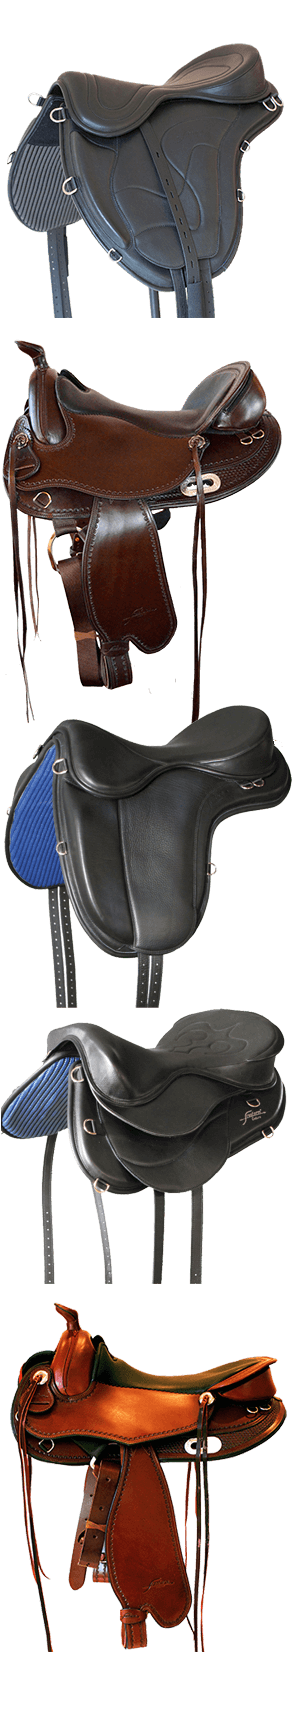 Treeless Saddles for Trail, Endurance & Dressage - Saddle Up